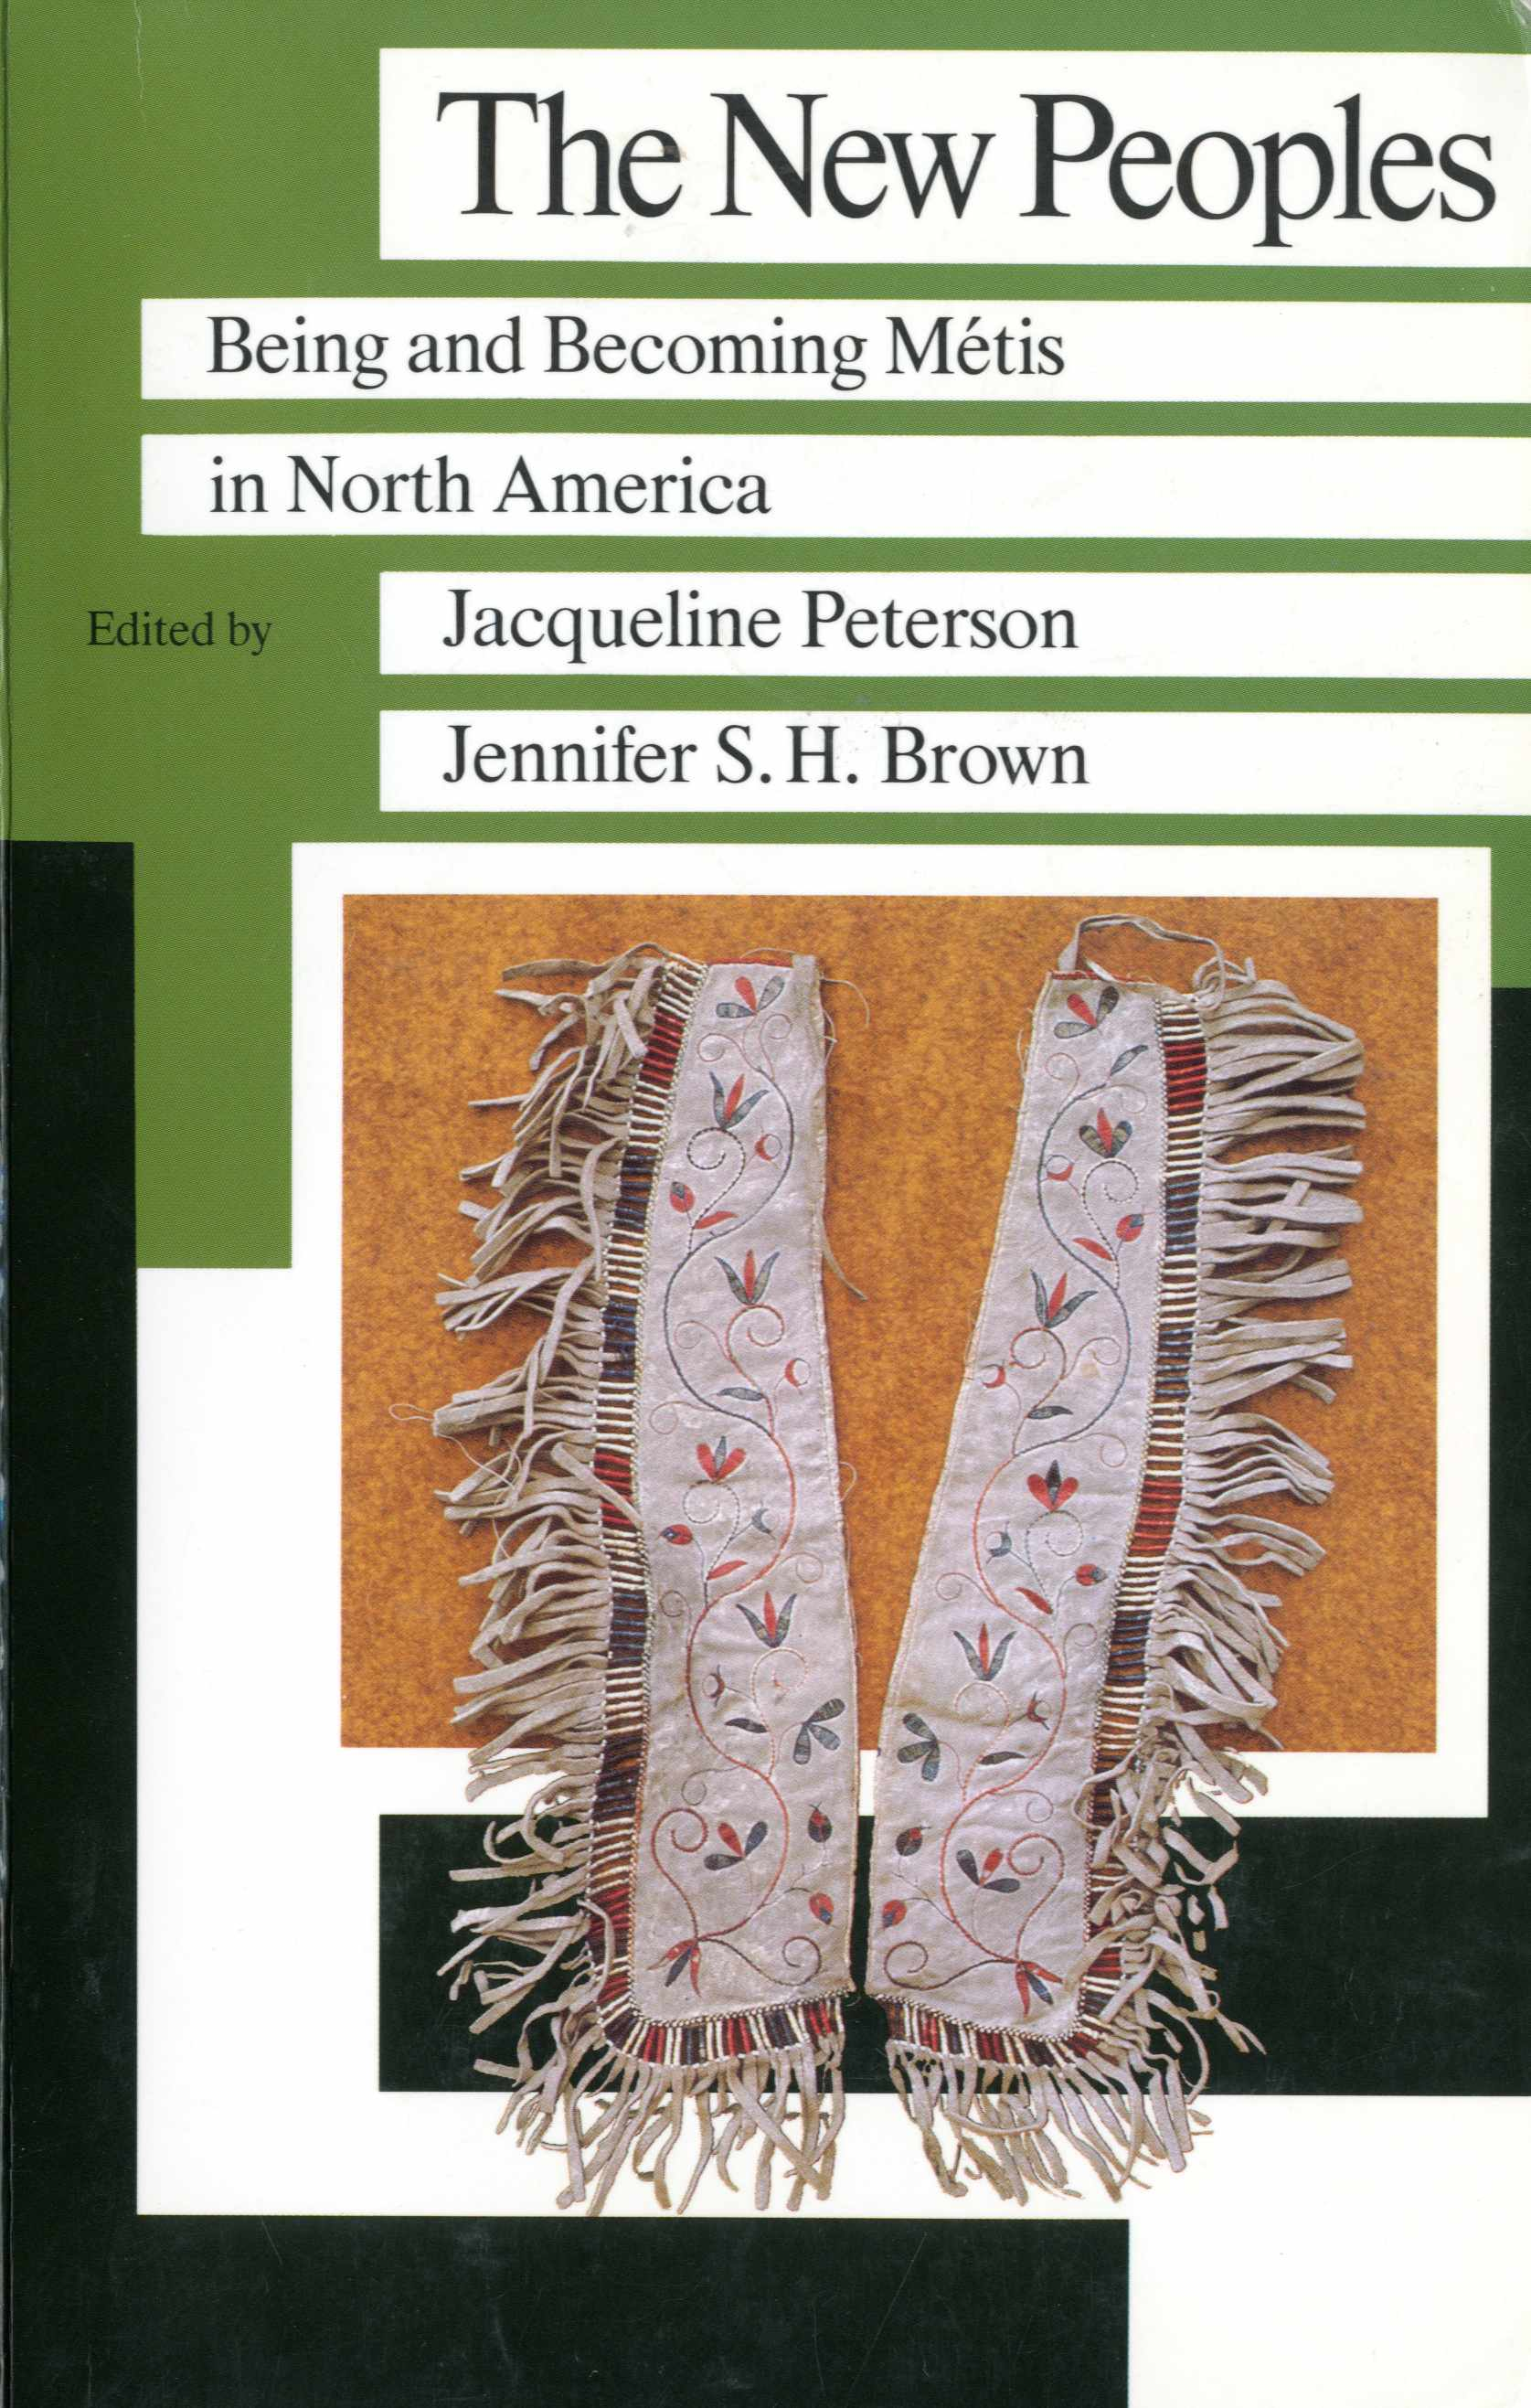 The New Peoples: Being and Becoming Metis in North America Image